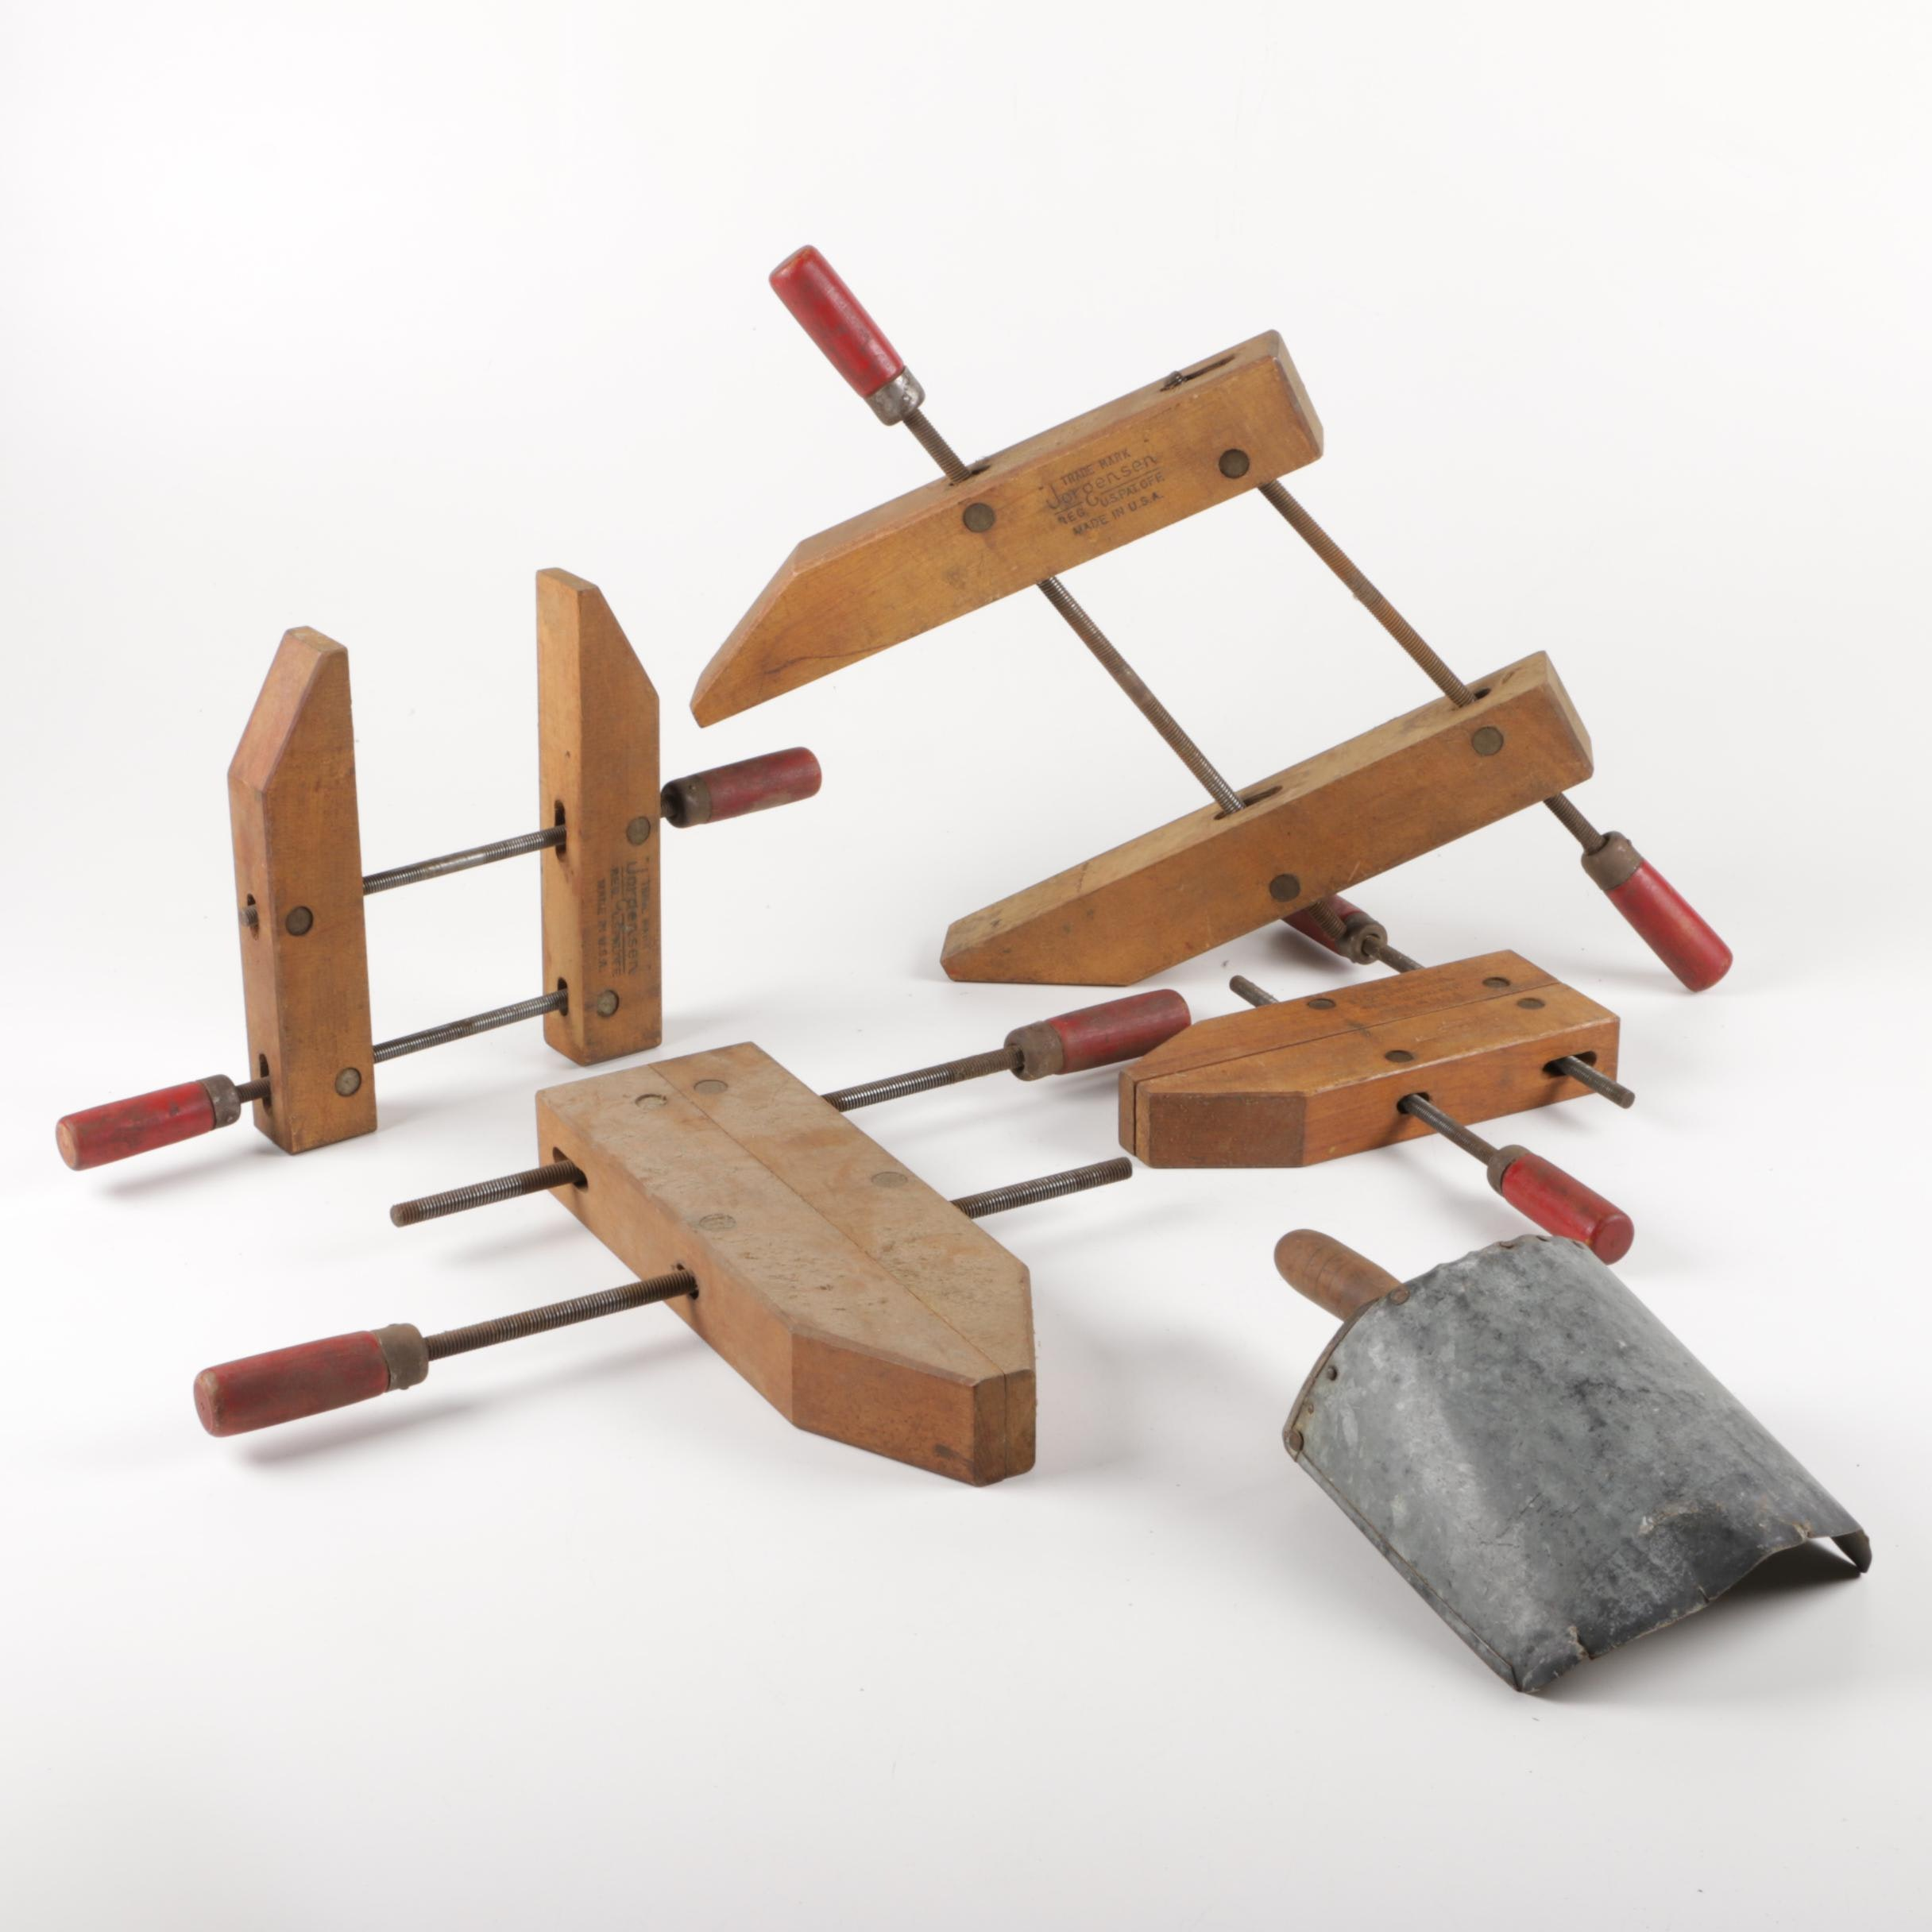 Four Jorgensen Clamps with Hand Shovel